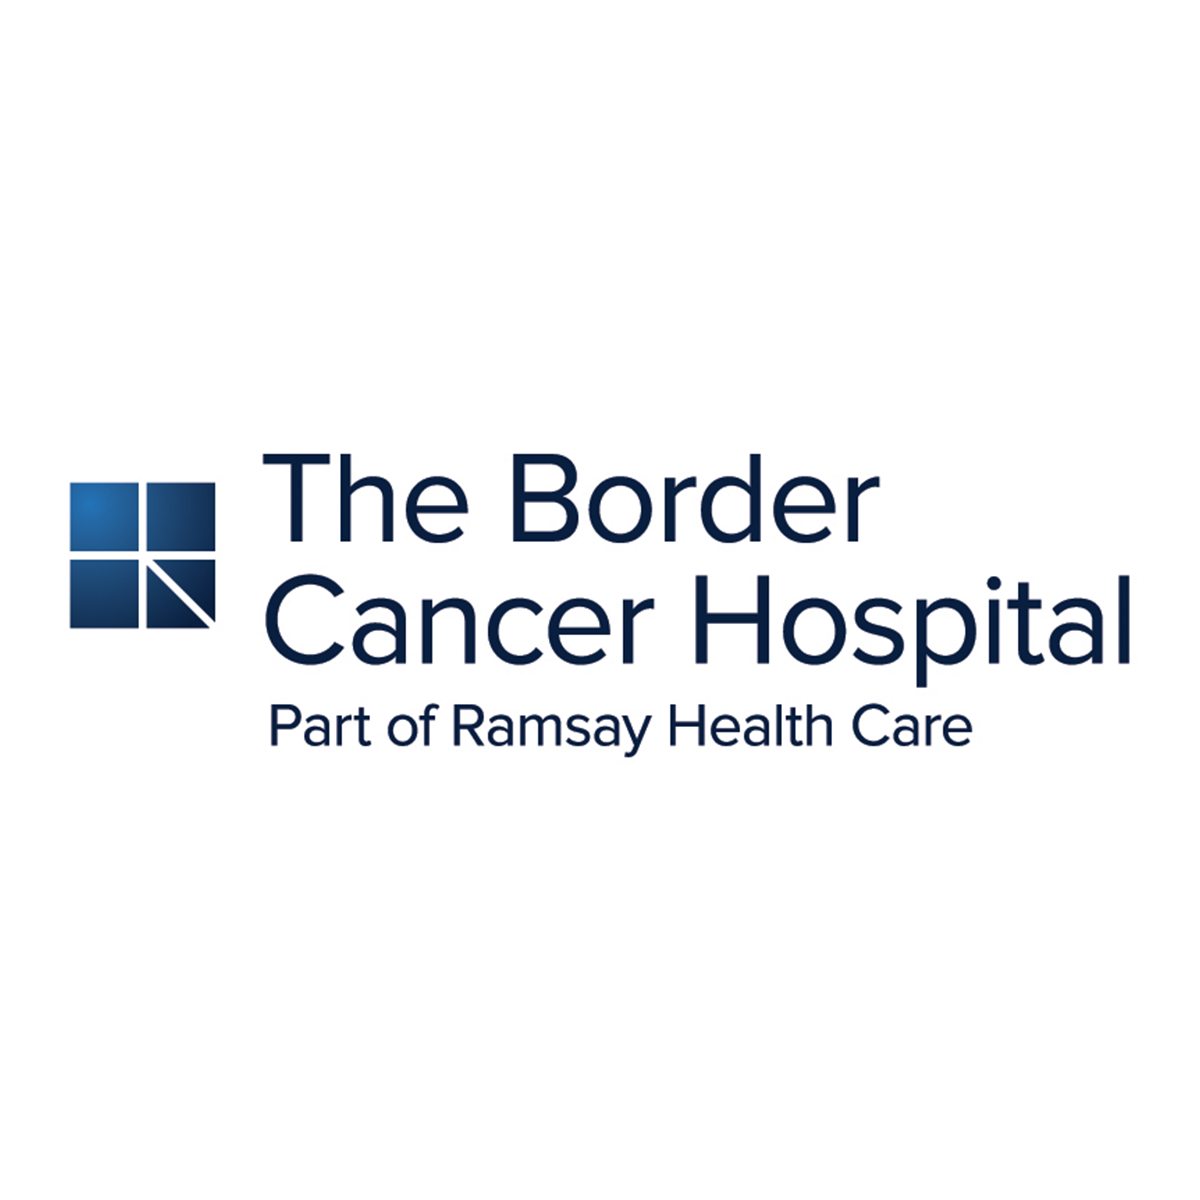 The Border Cancer Hospital